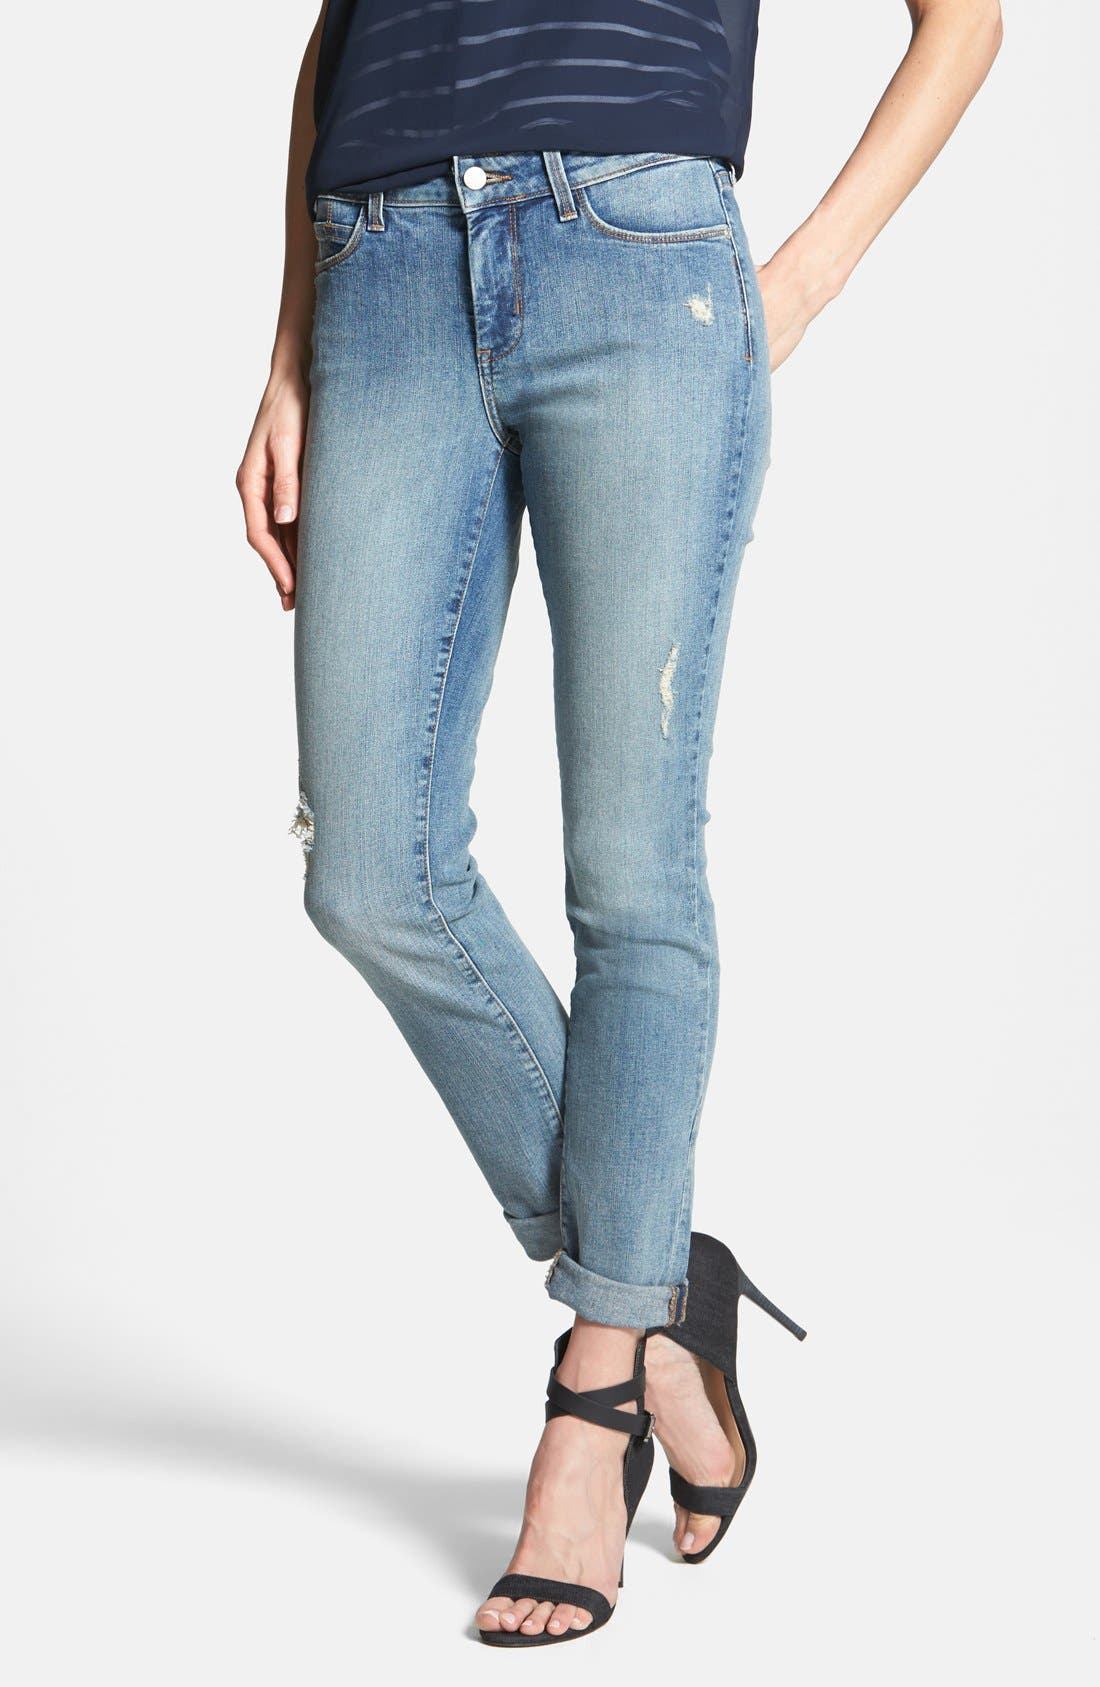 Main Image - NYDJ 'Anabelle' Distressed Stretch Skinny Ankle Jeans (Lake Havasu) (Regular & Petite)